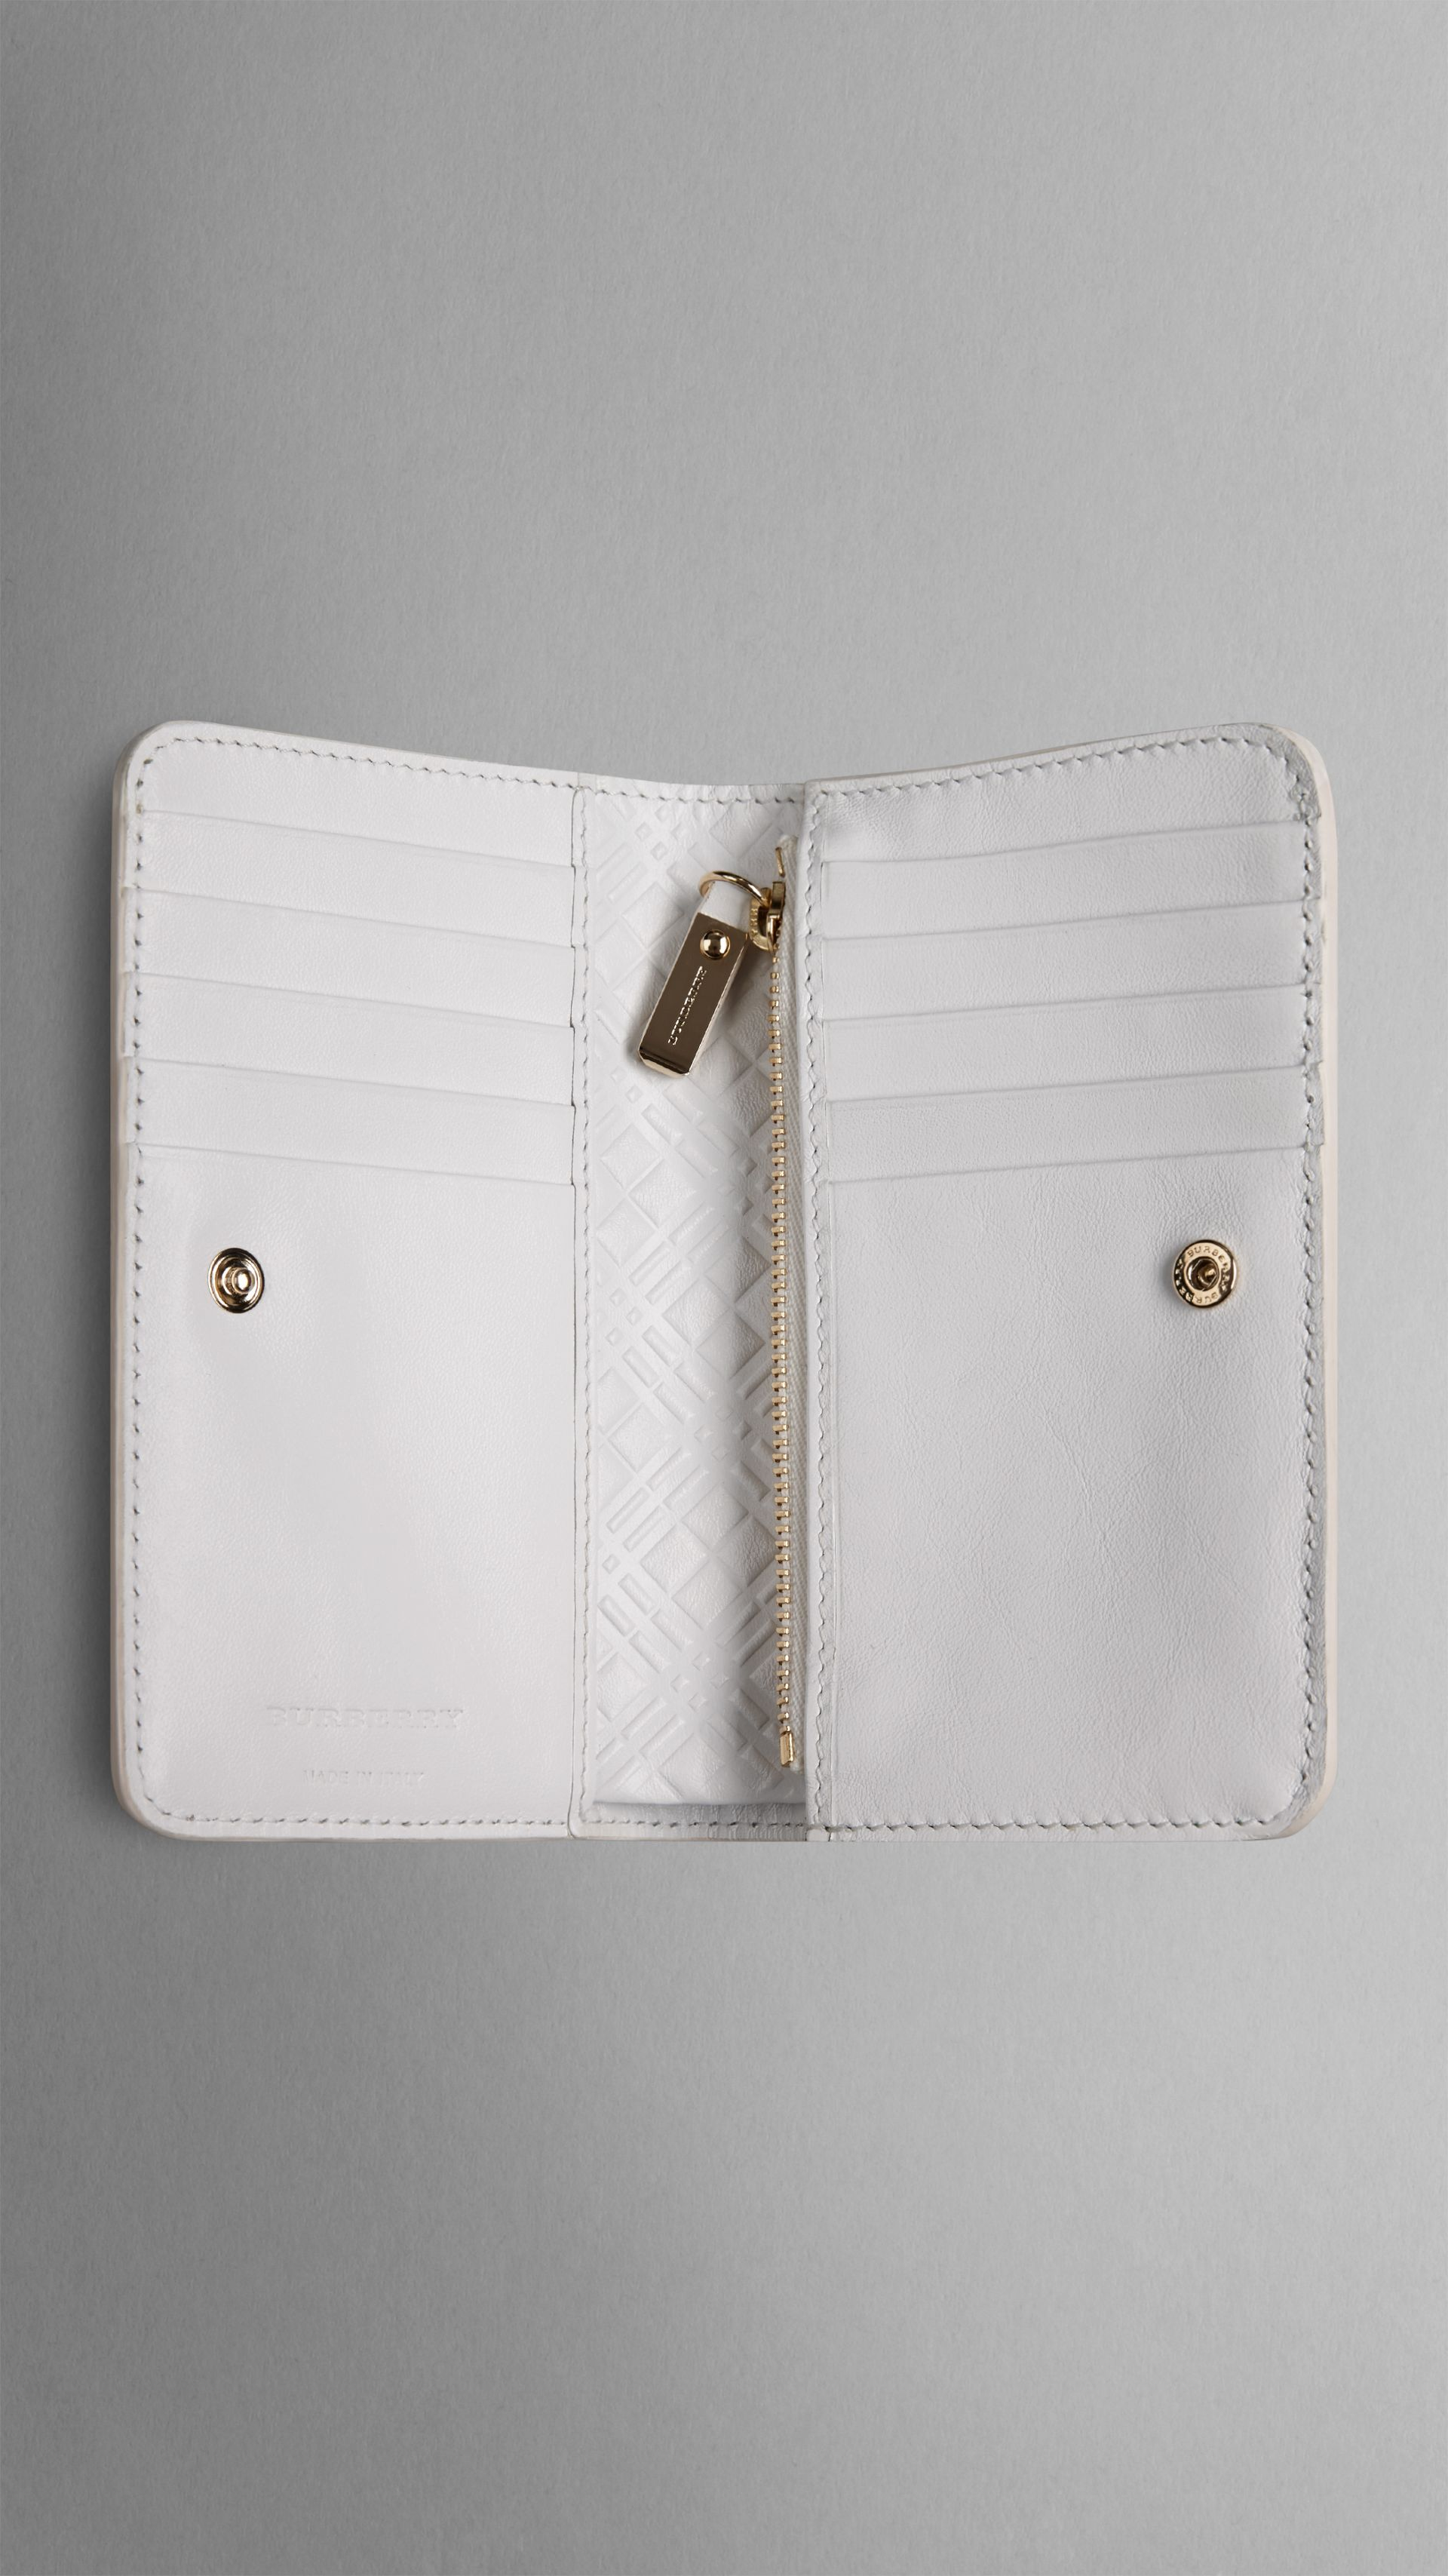 39aedbadead4 Patent London Leather Continental Wallet in White